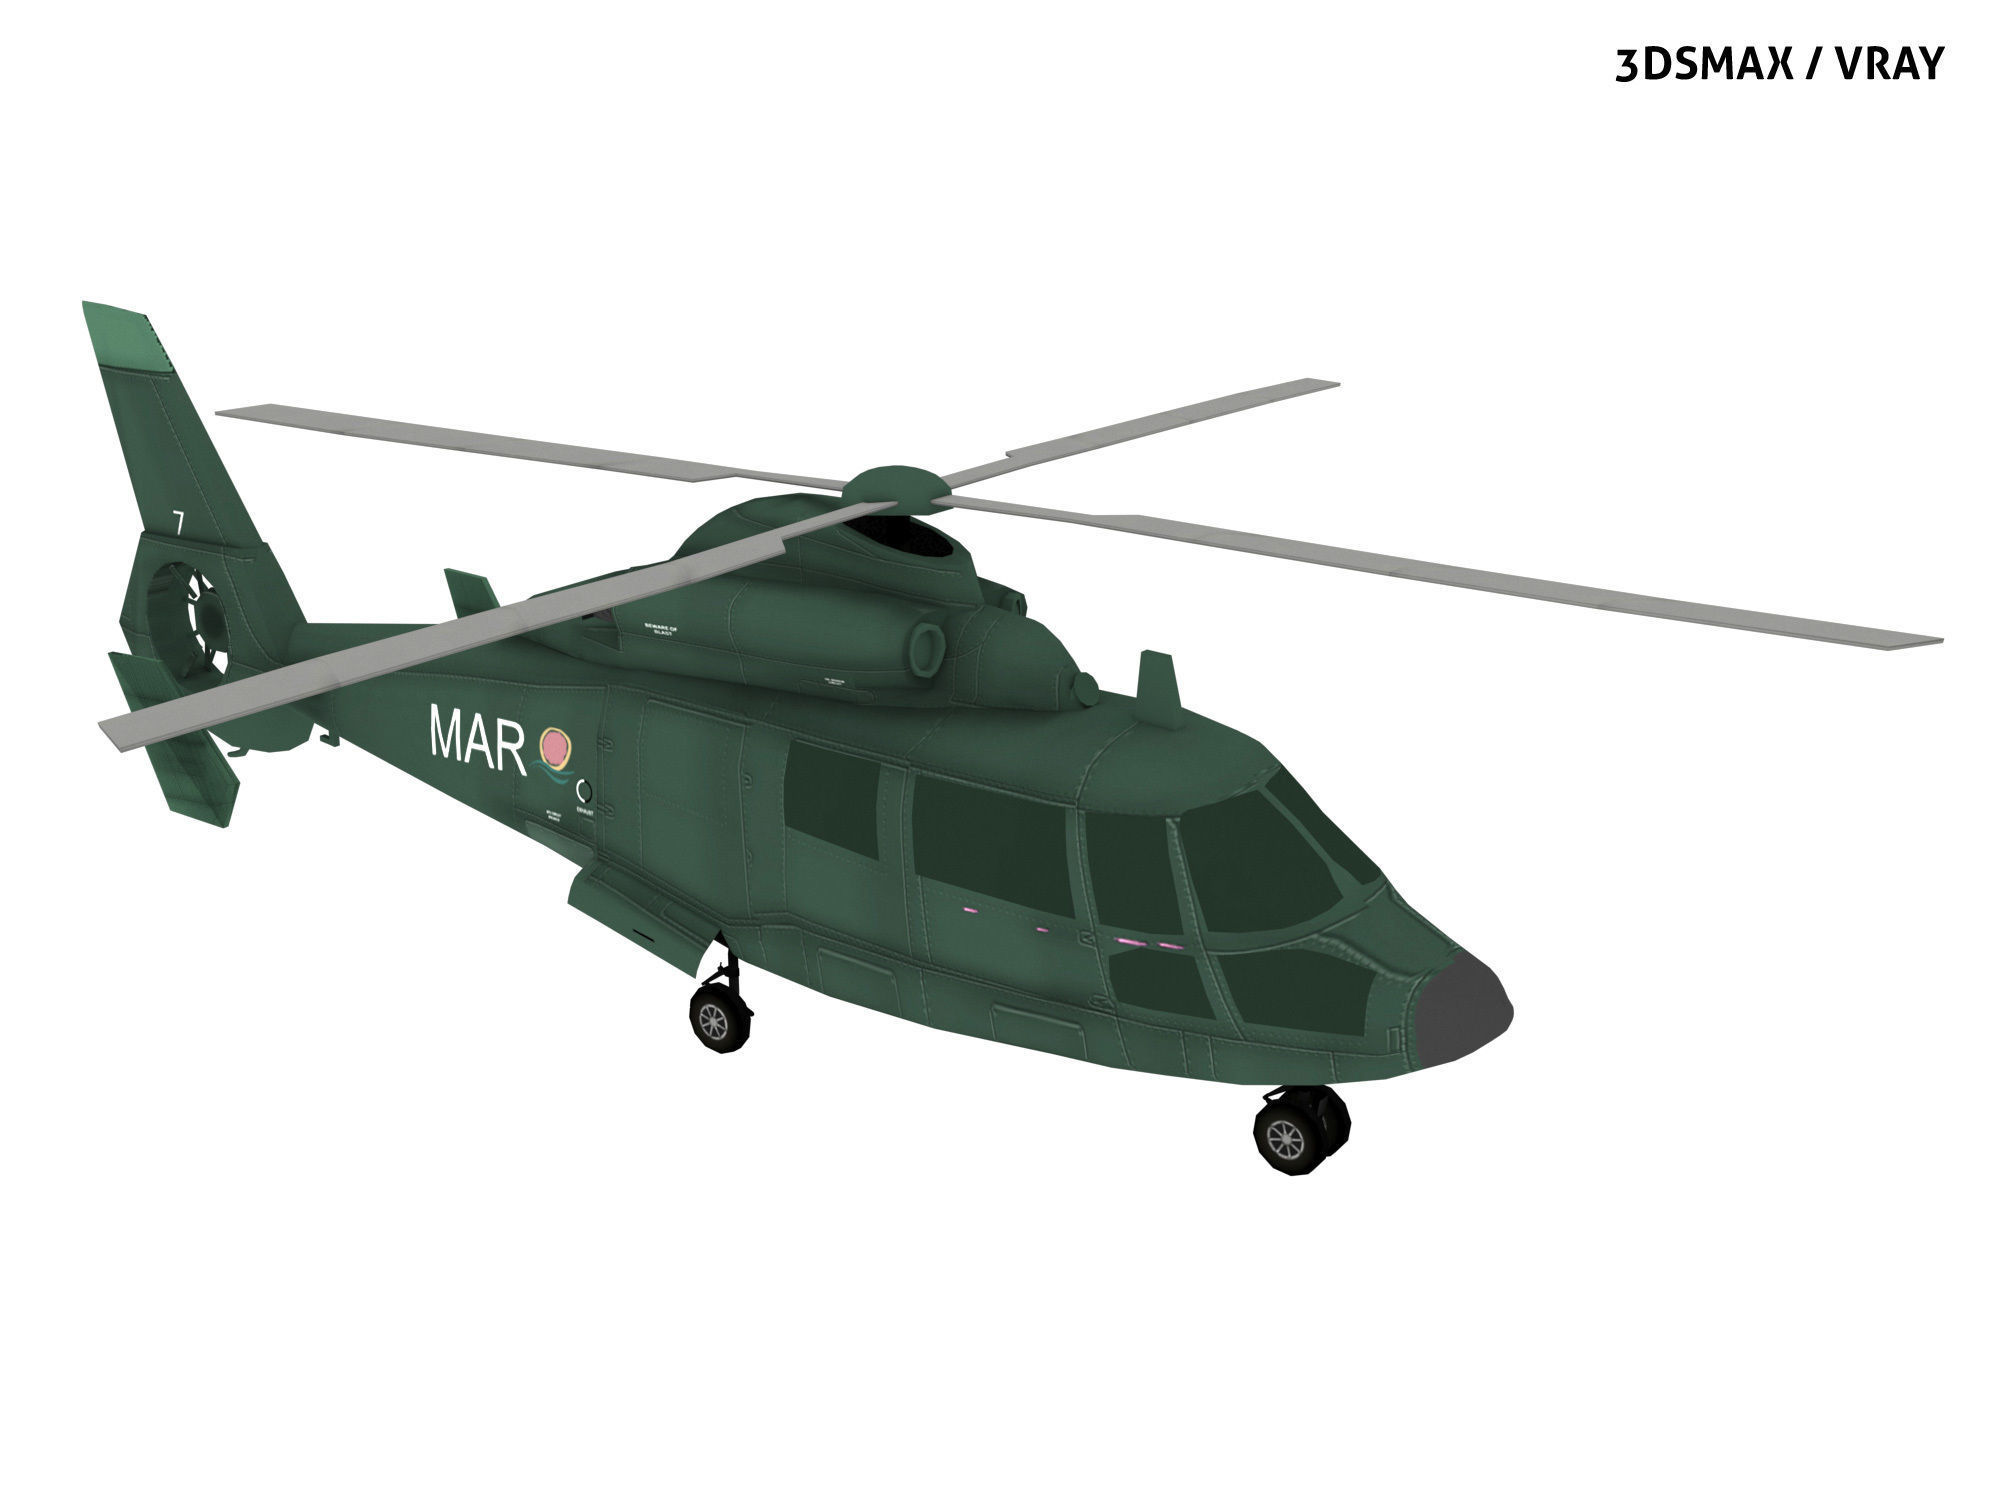 EUROCOPTER DAUPHIN HELICOPTER